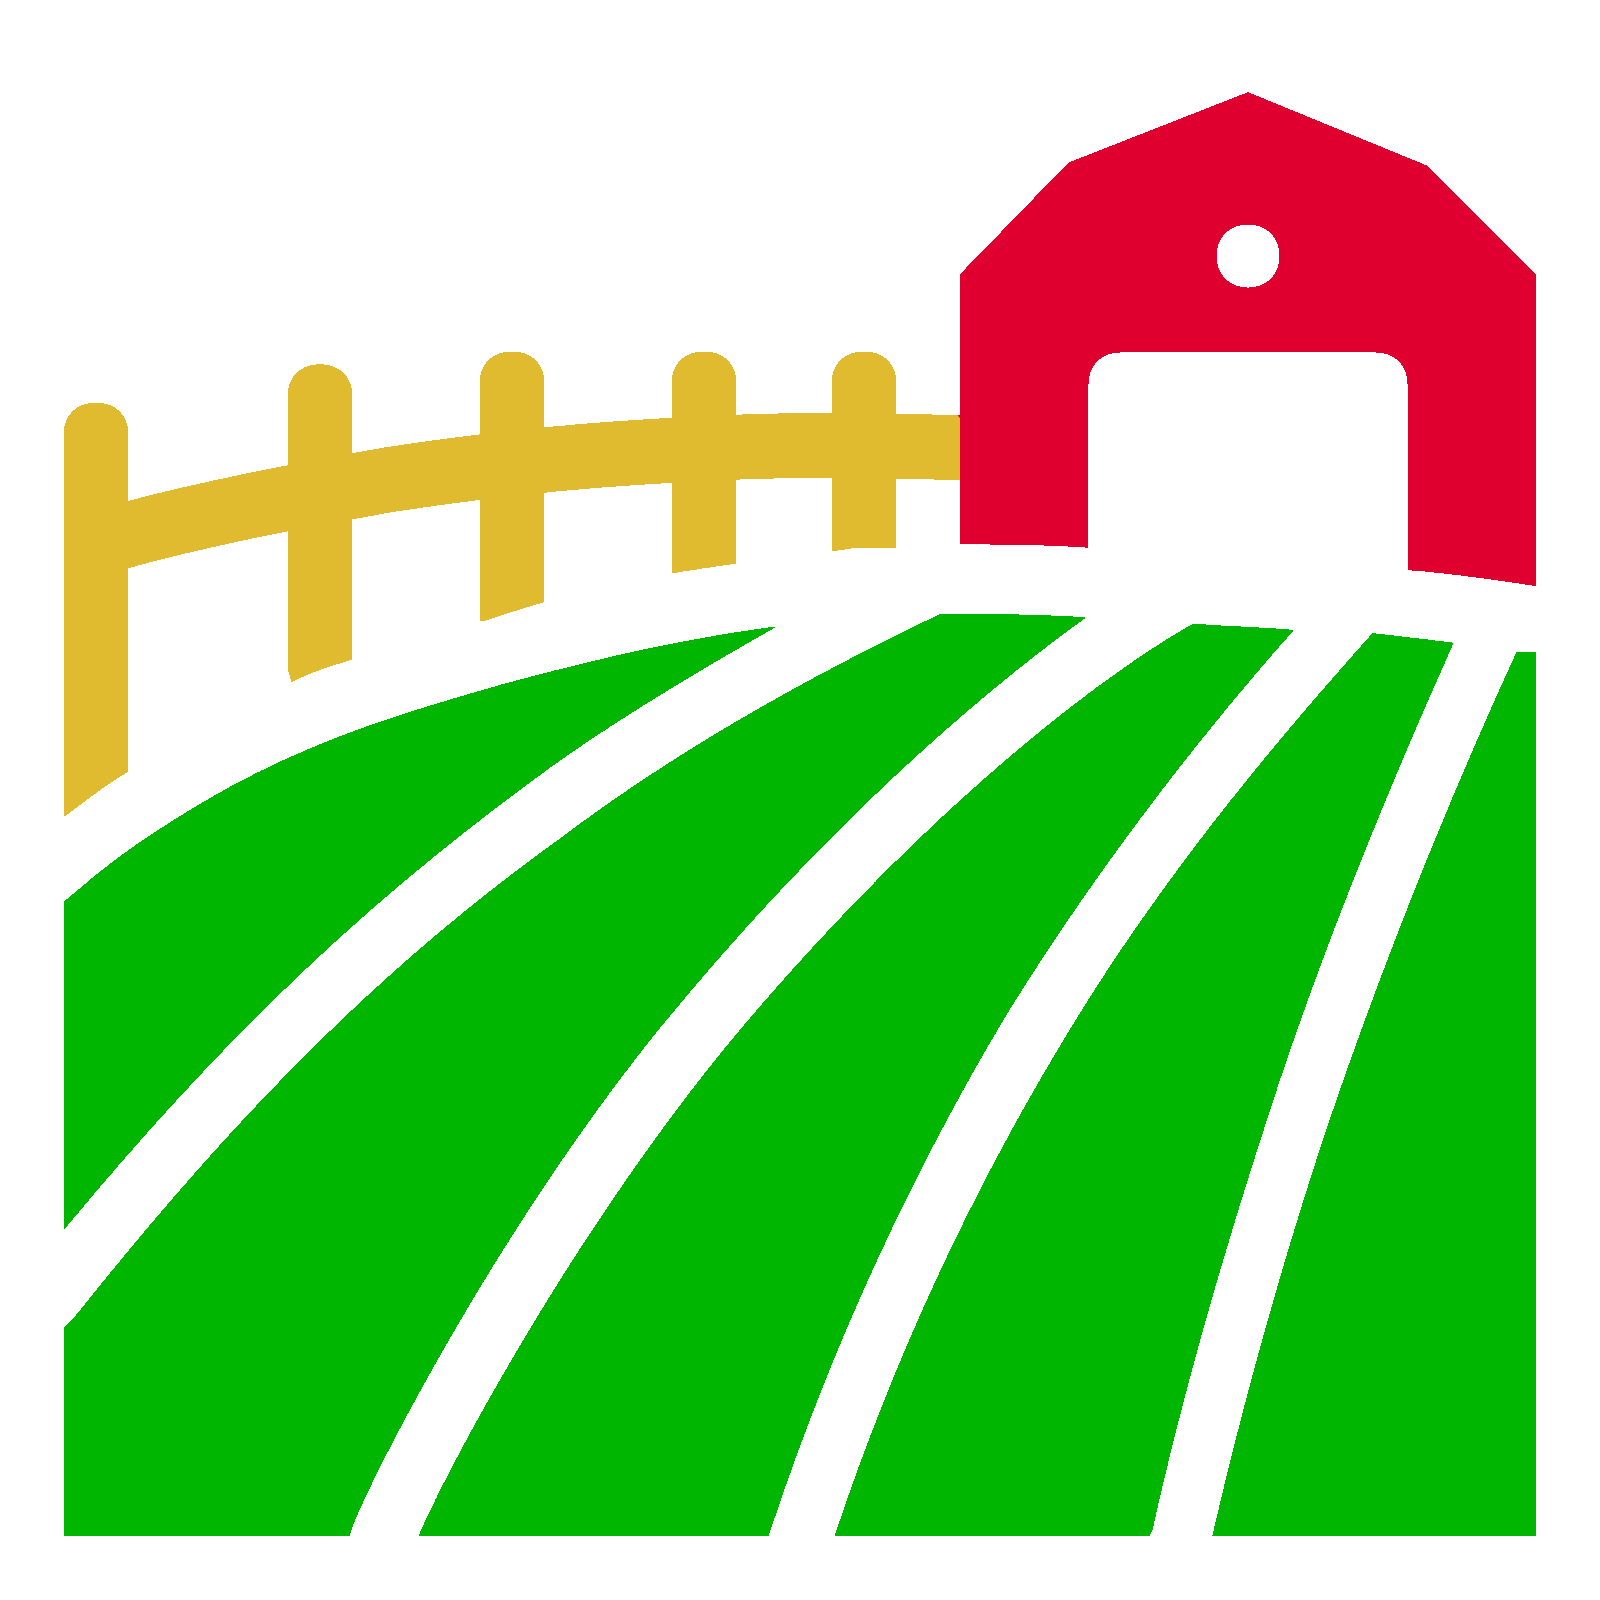 Forest conservation and agriculture. Farming clipart producer economics